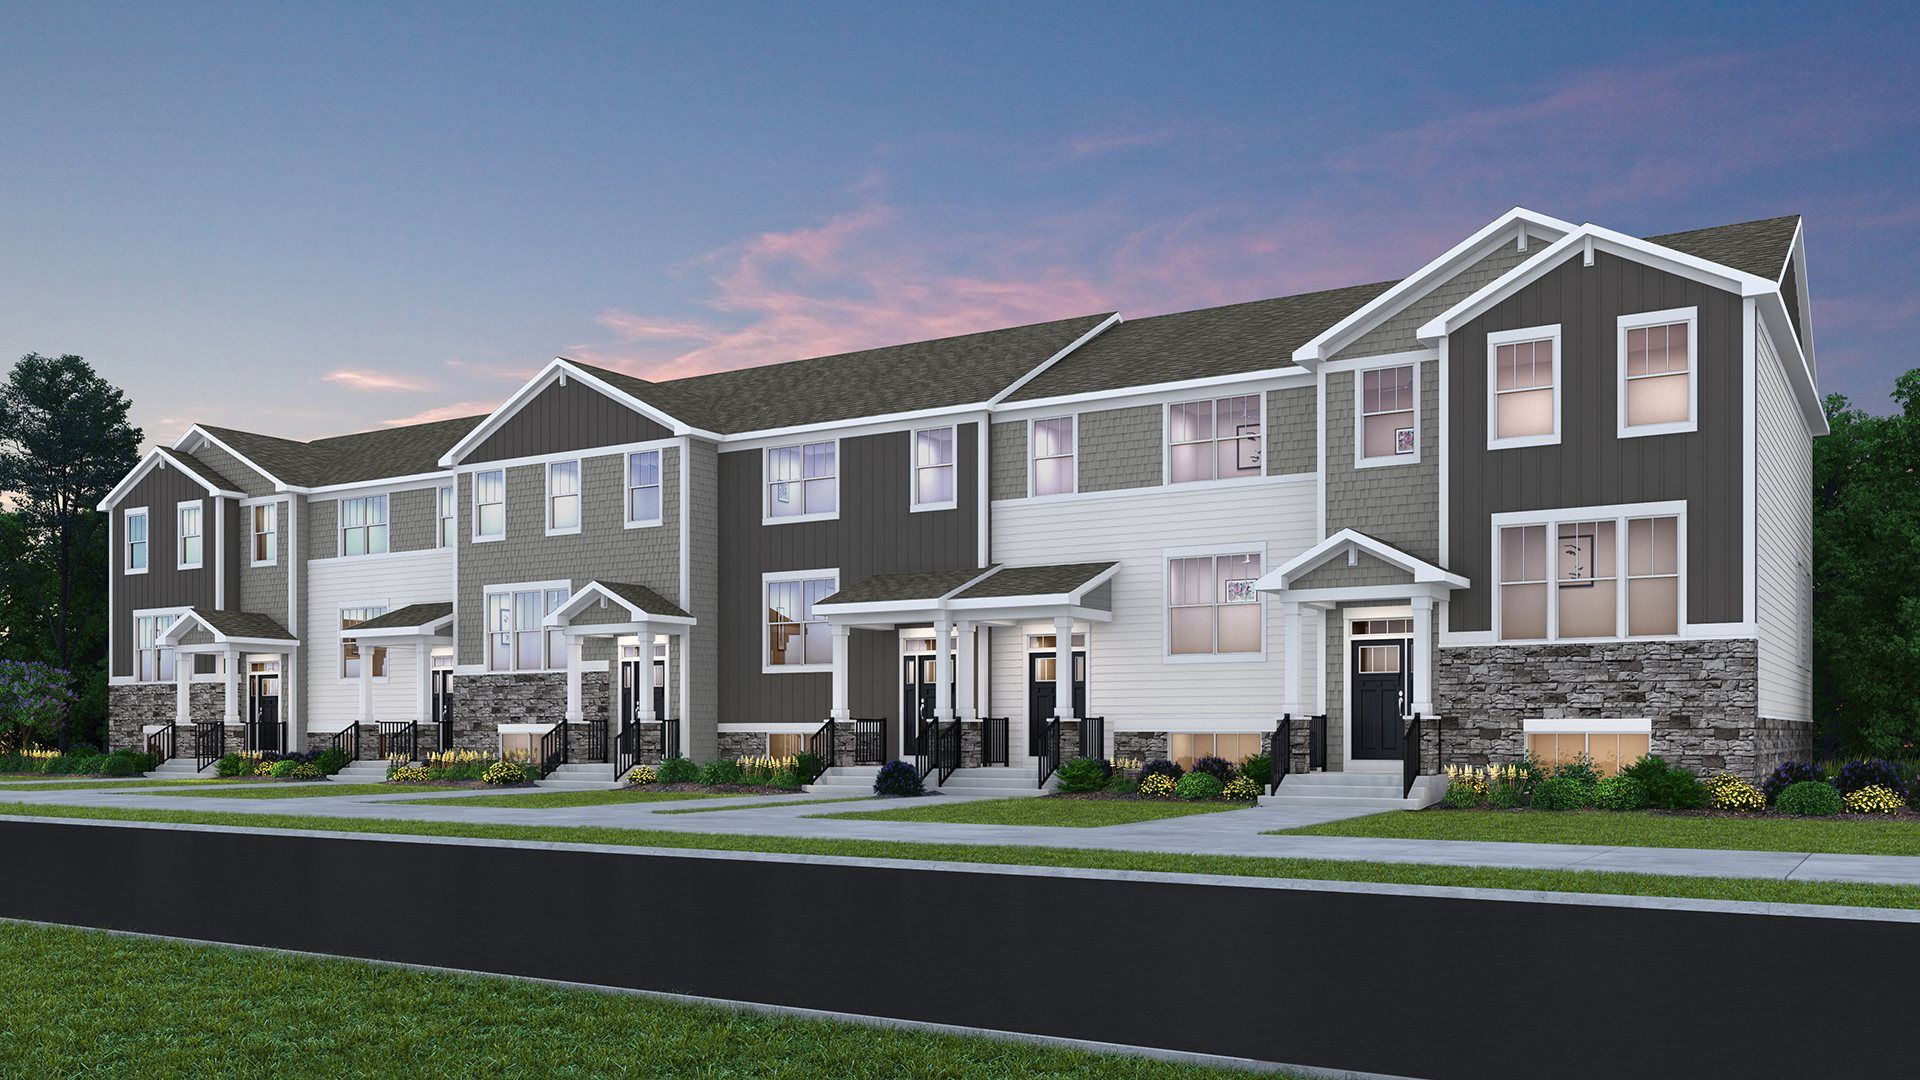 New Urban Townhomes for sale in Mundelein, IL by Lennar Homes